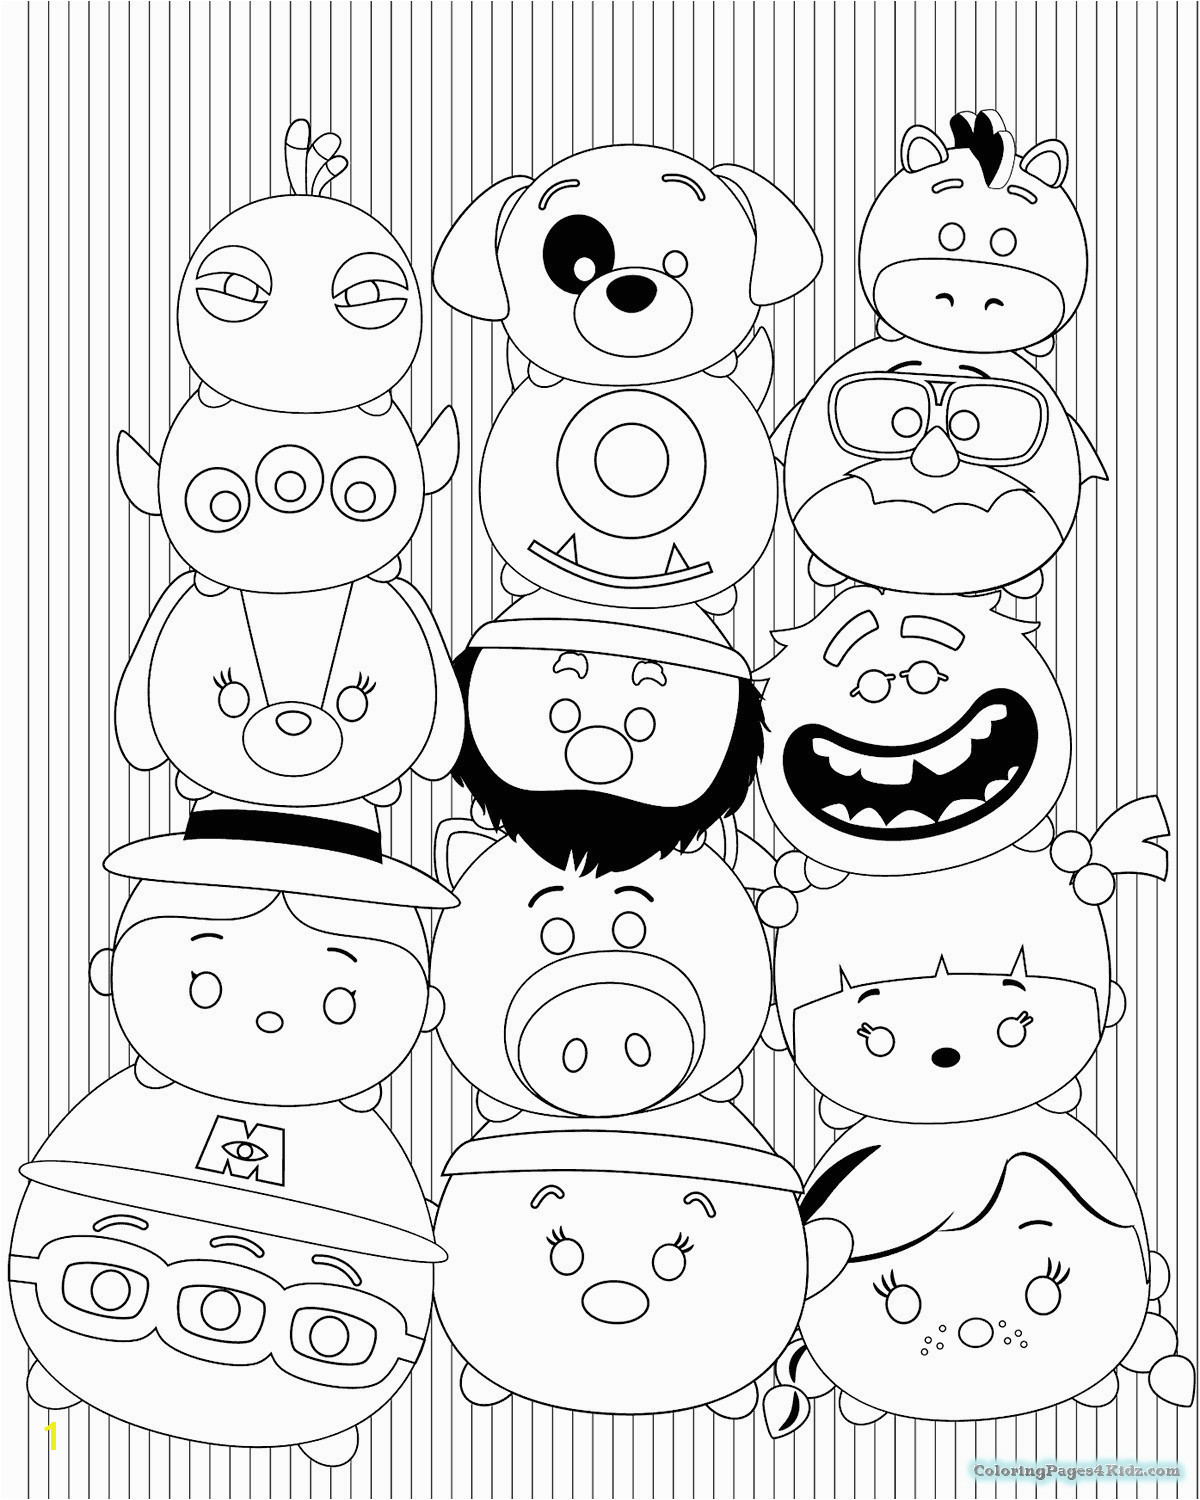 Cat Coloring Pages for Kids to Print attractive Cat Coloring Pages Free Printable New Best Od